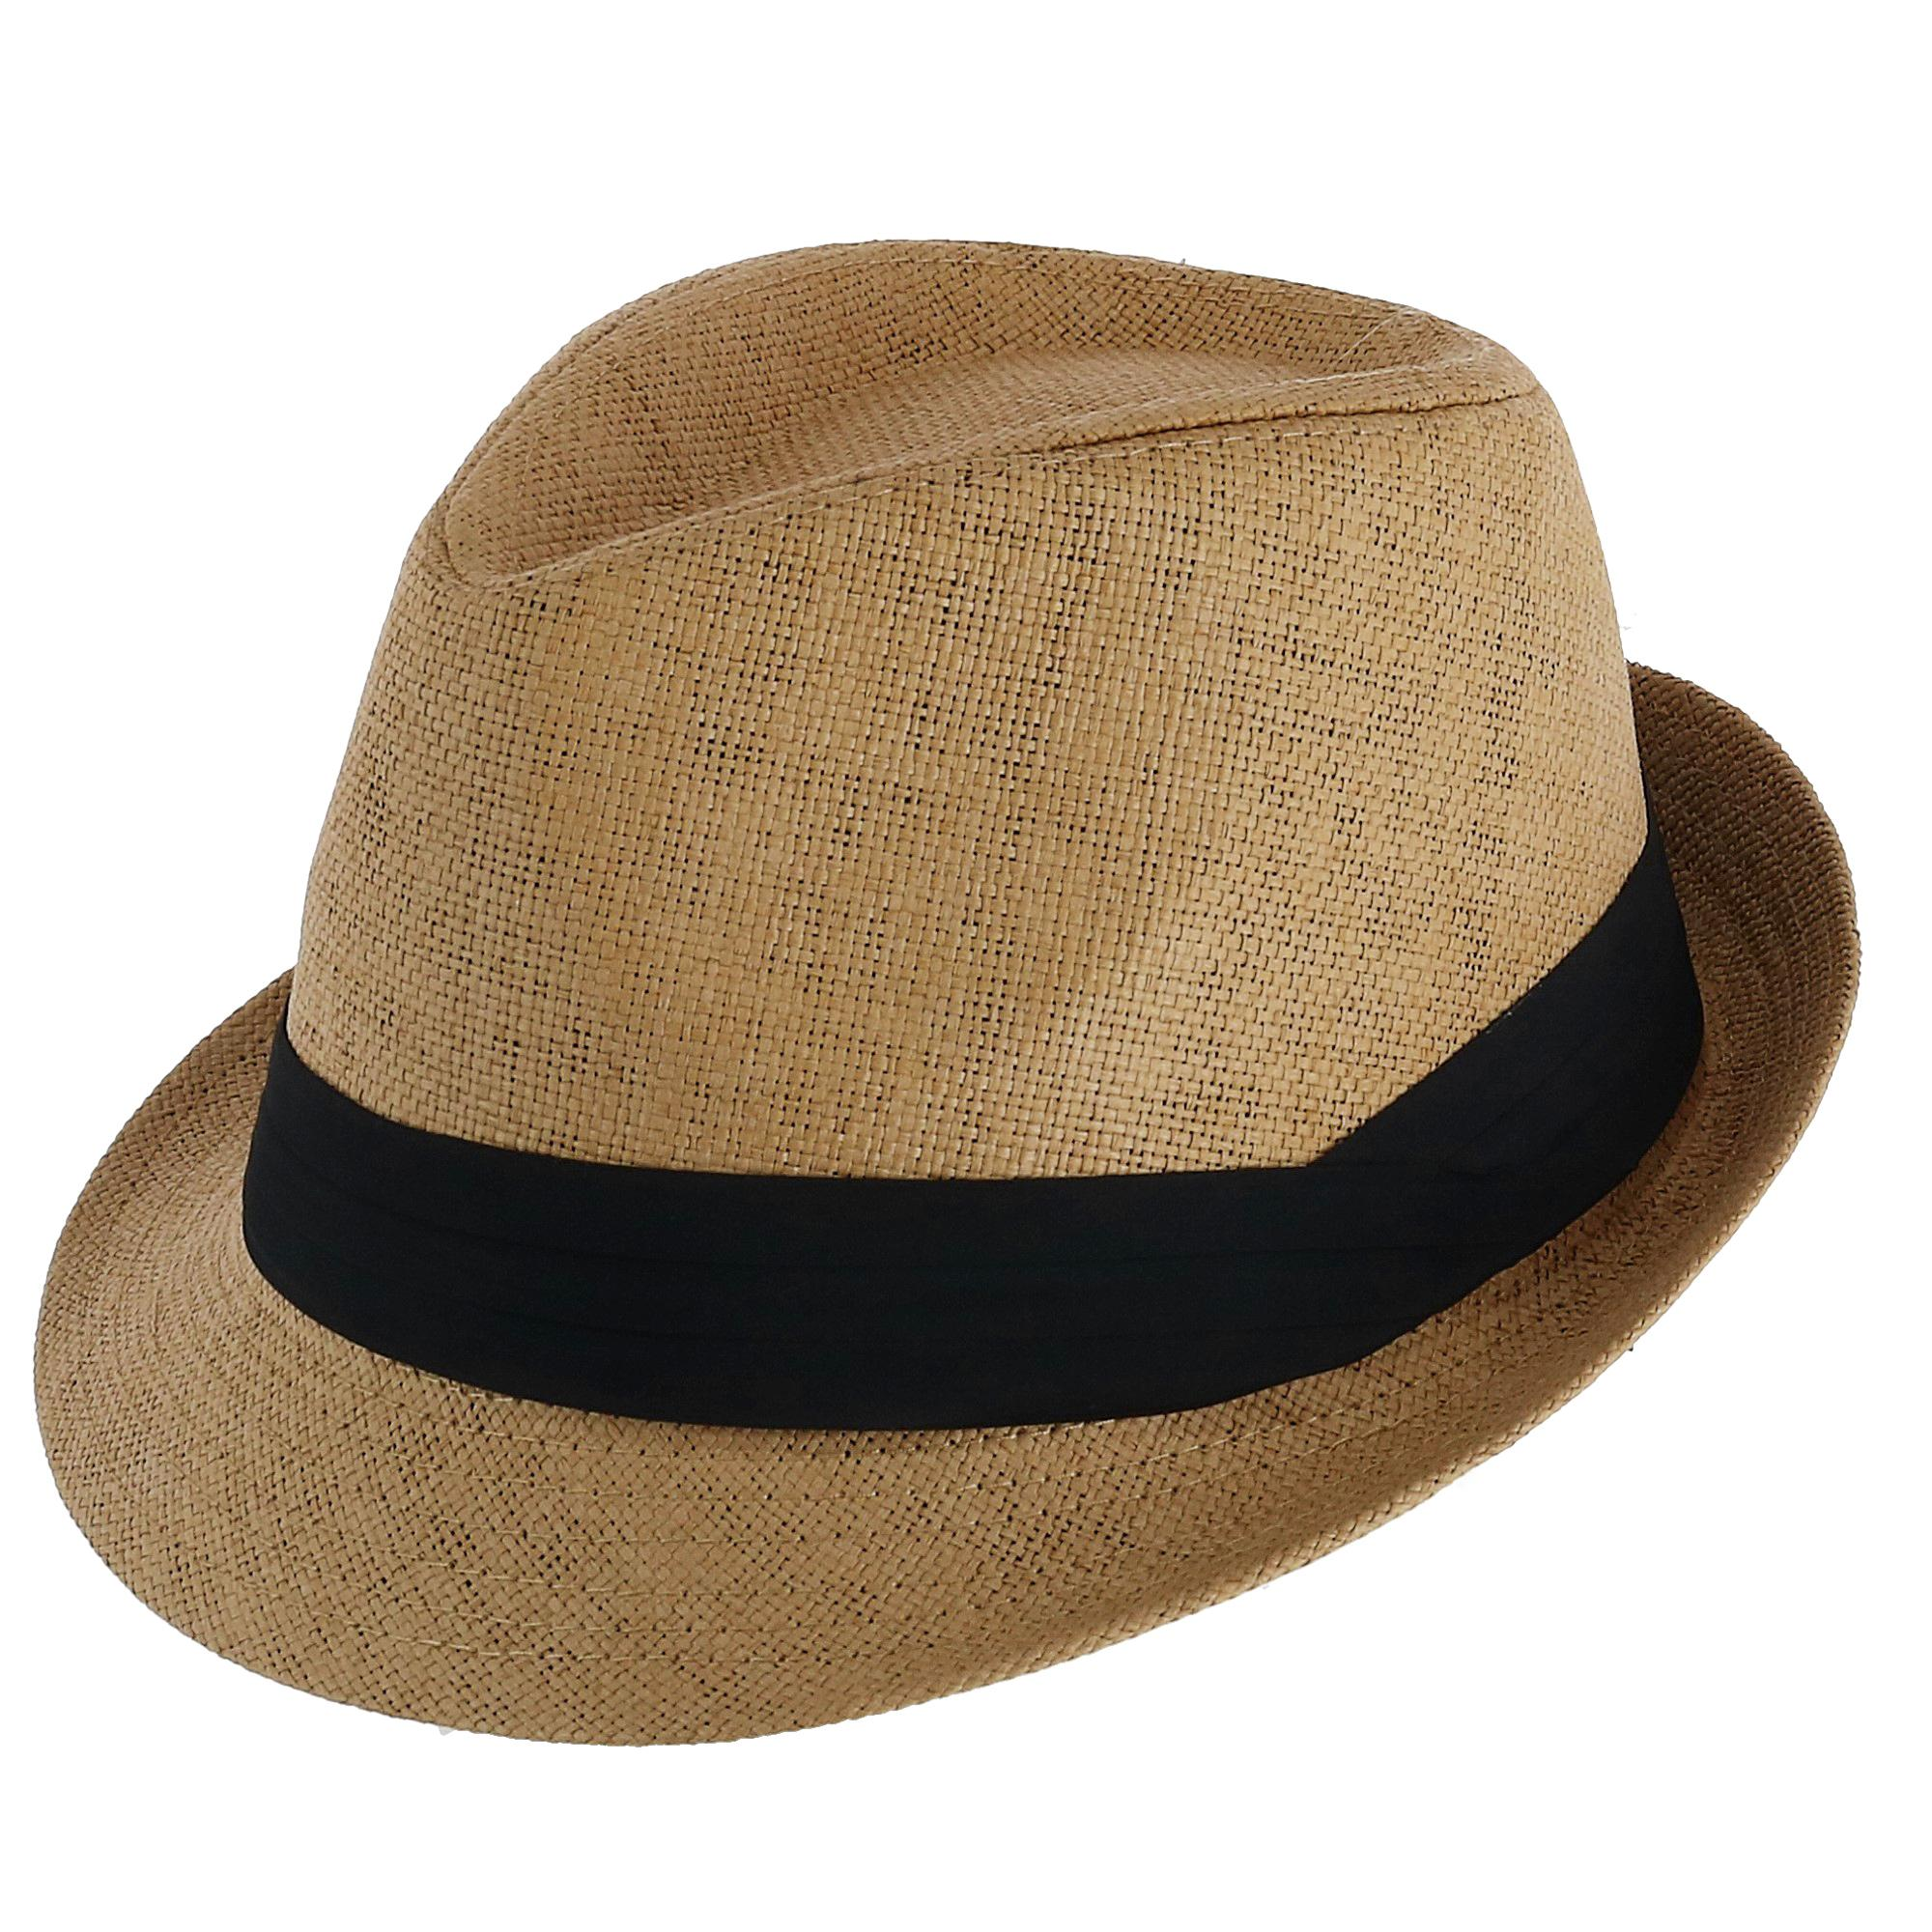 1d0988cc2 Details about New Westend Trilby Fedora Hat with Black Band